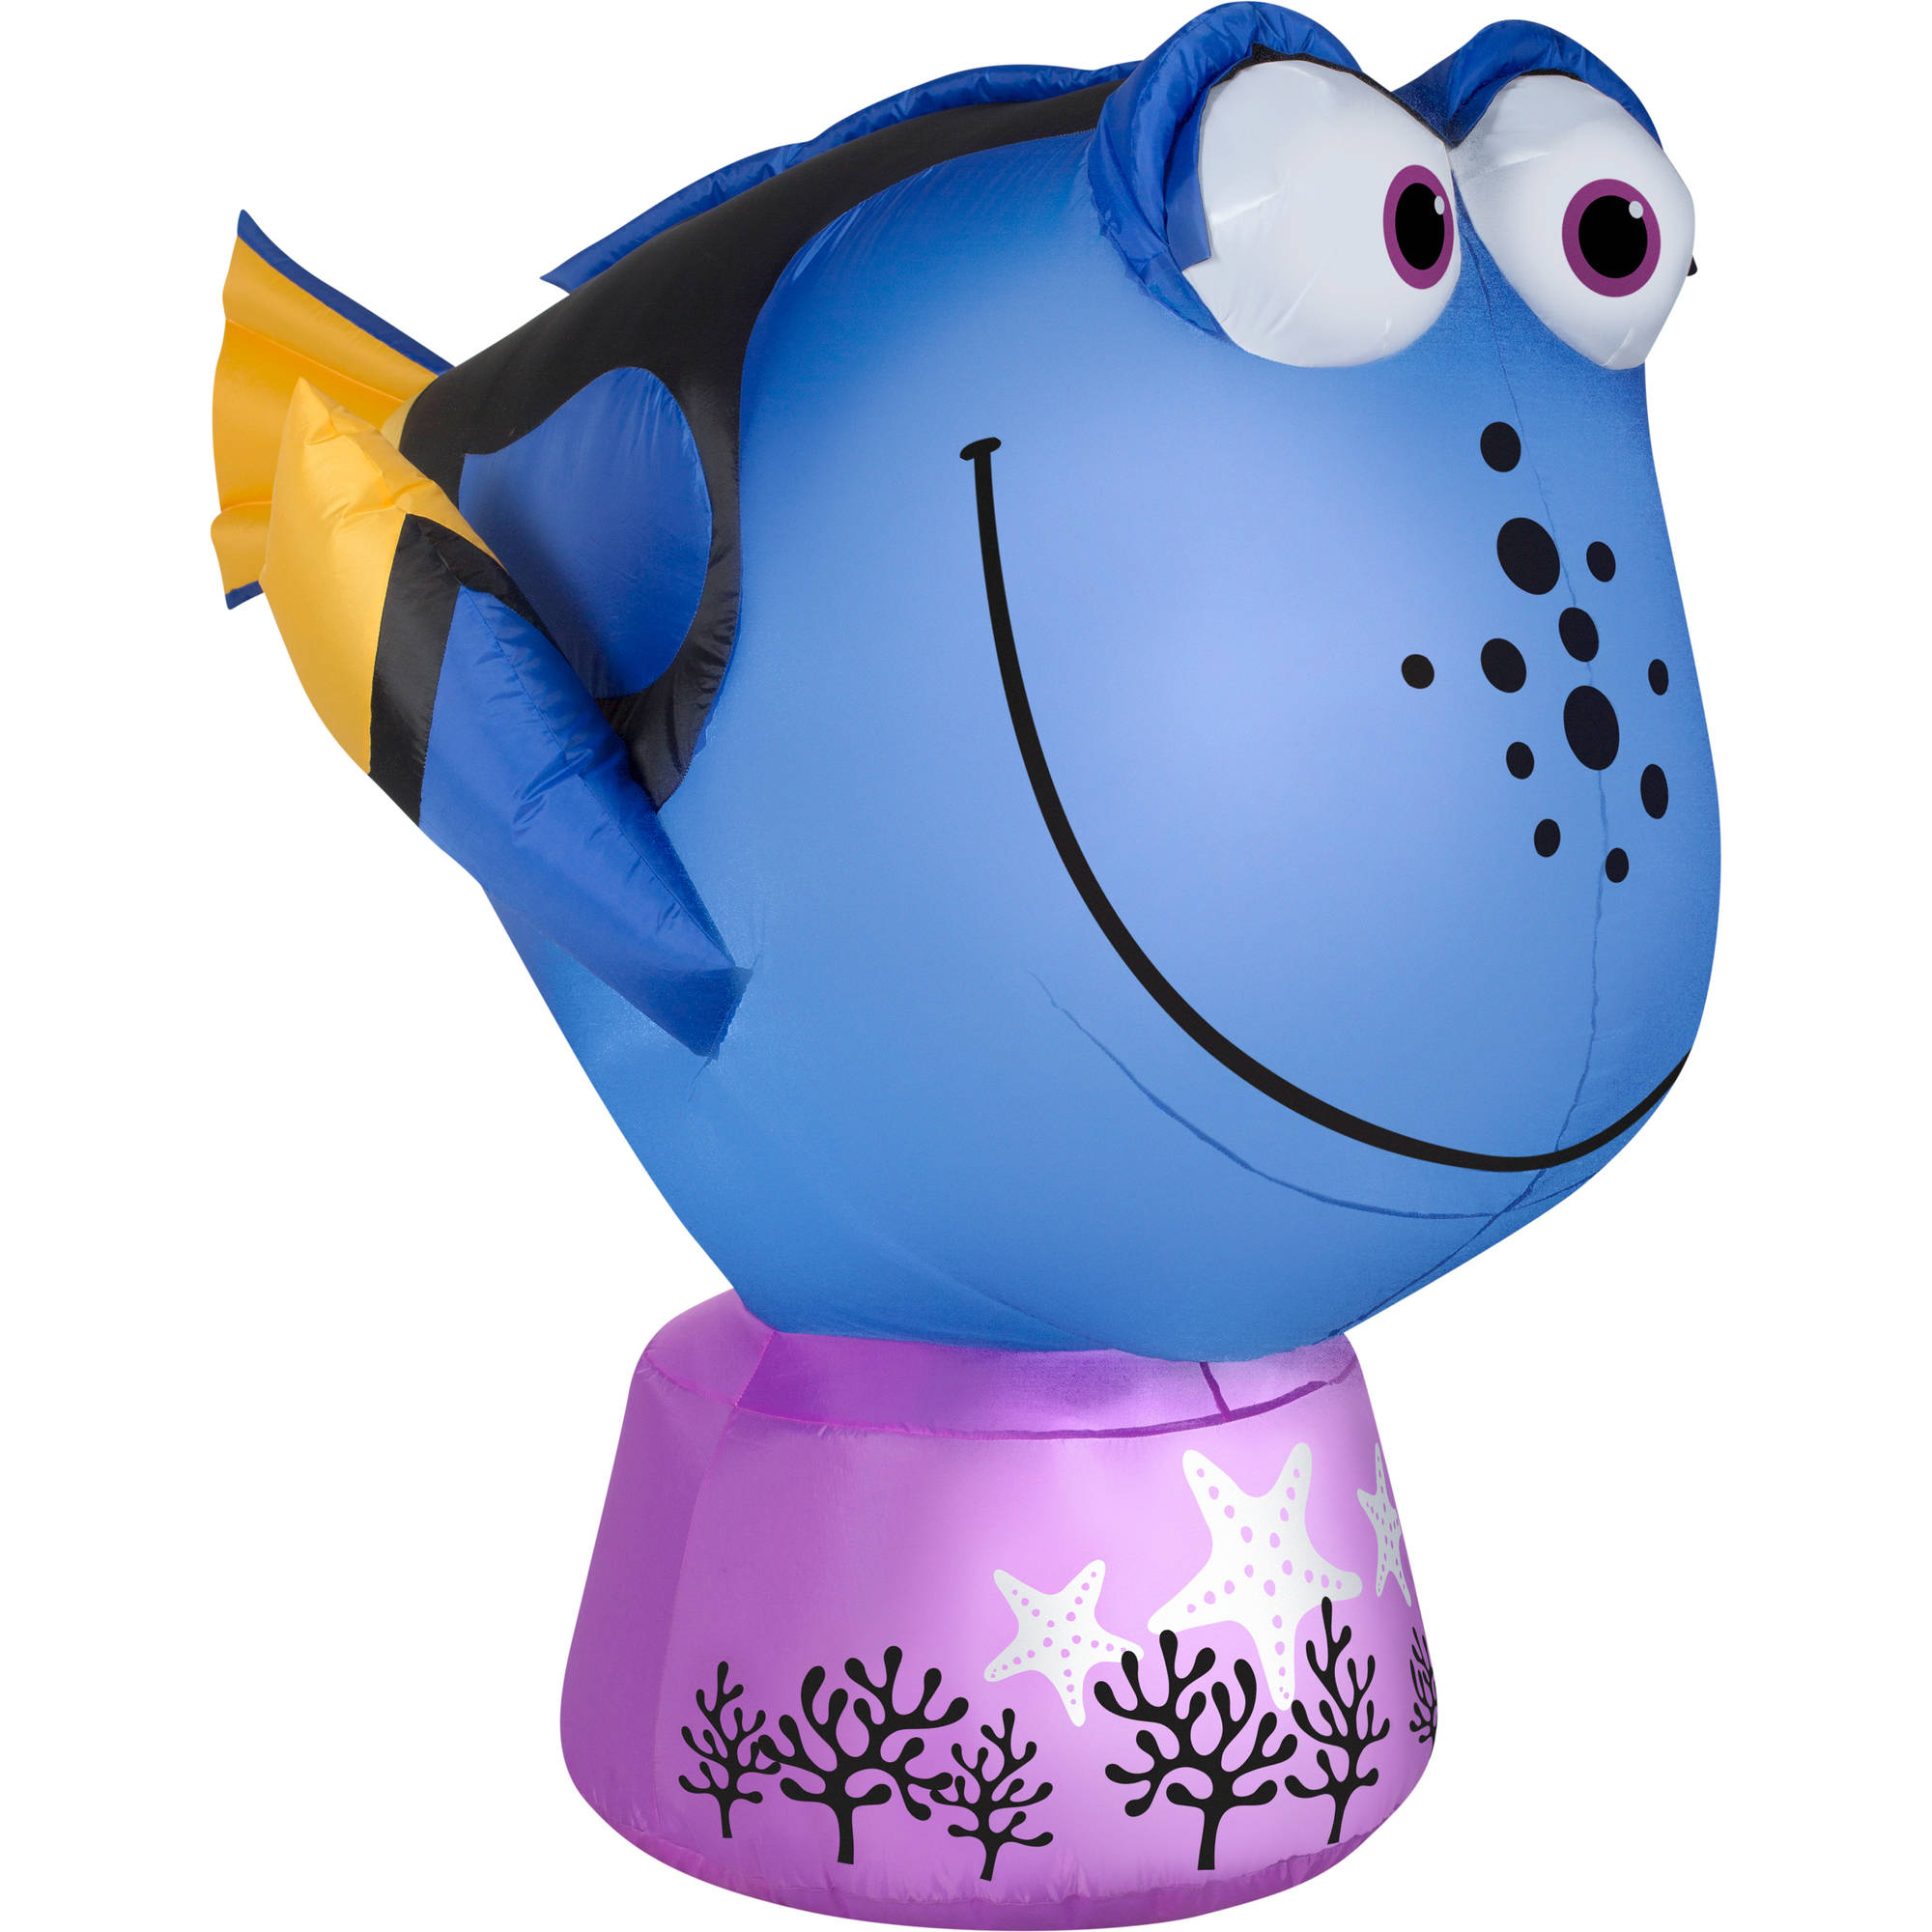 gemmy airblown inflatable 35 x 45 finding dory halloween decoration walmartcom - Finding Nemo Christmas Decorations